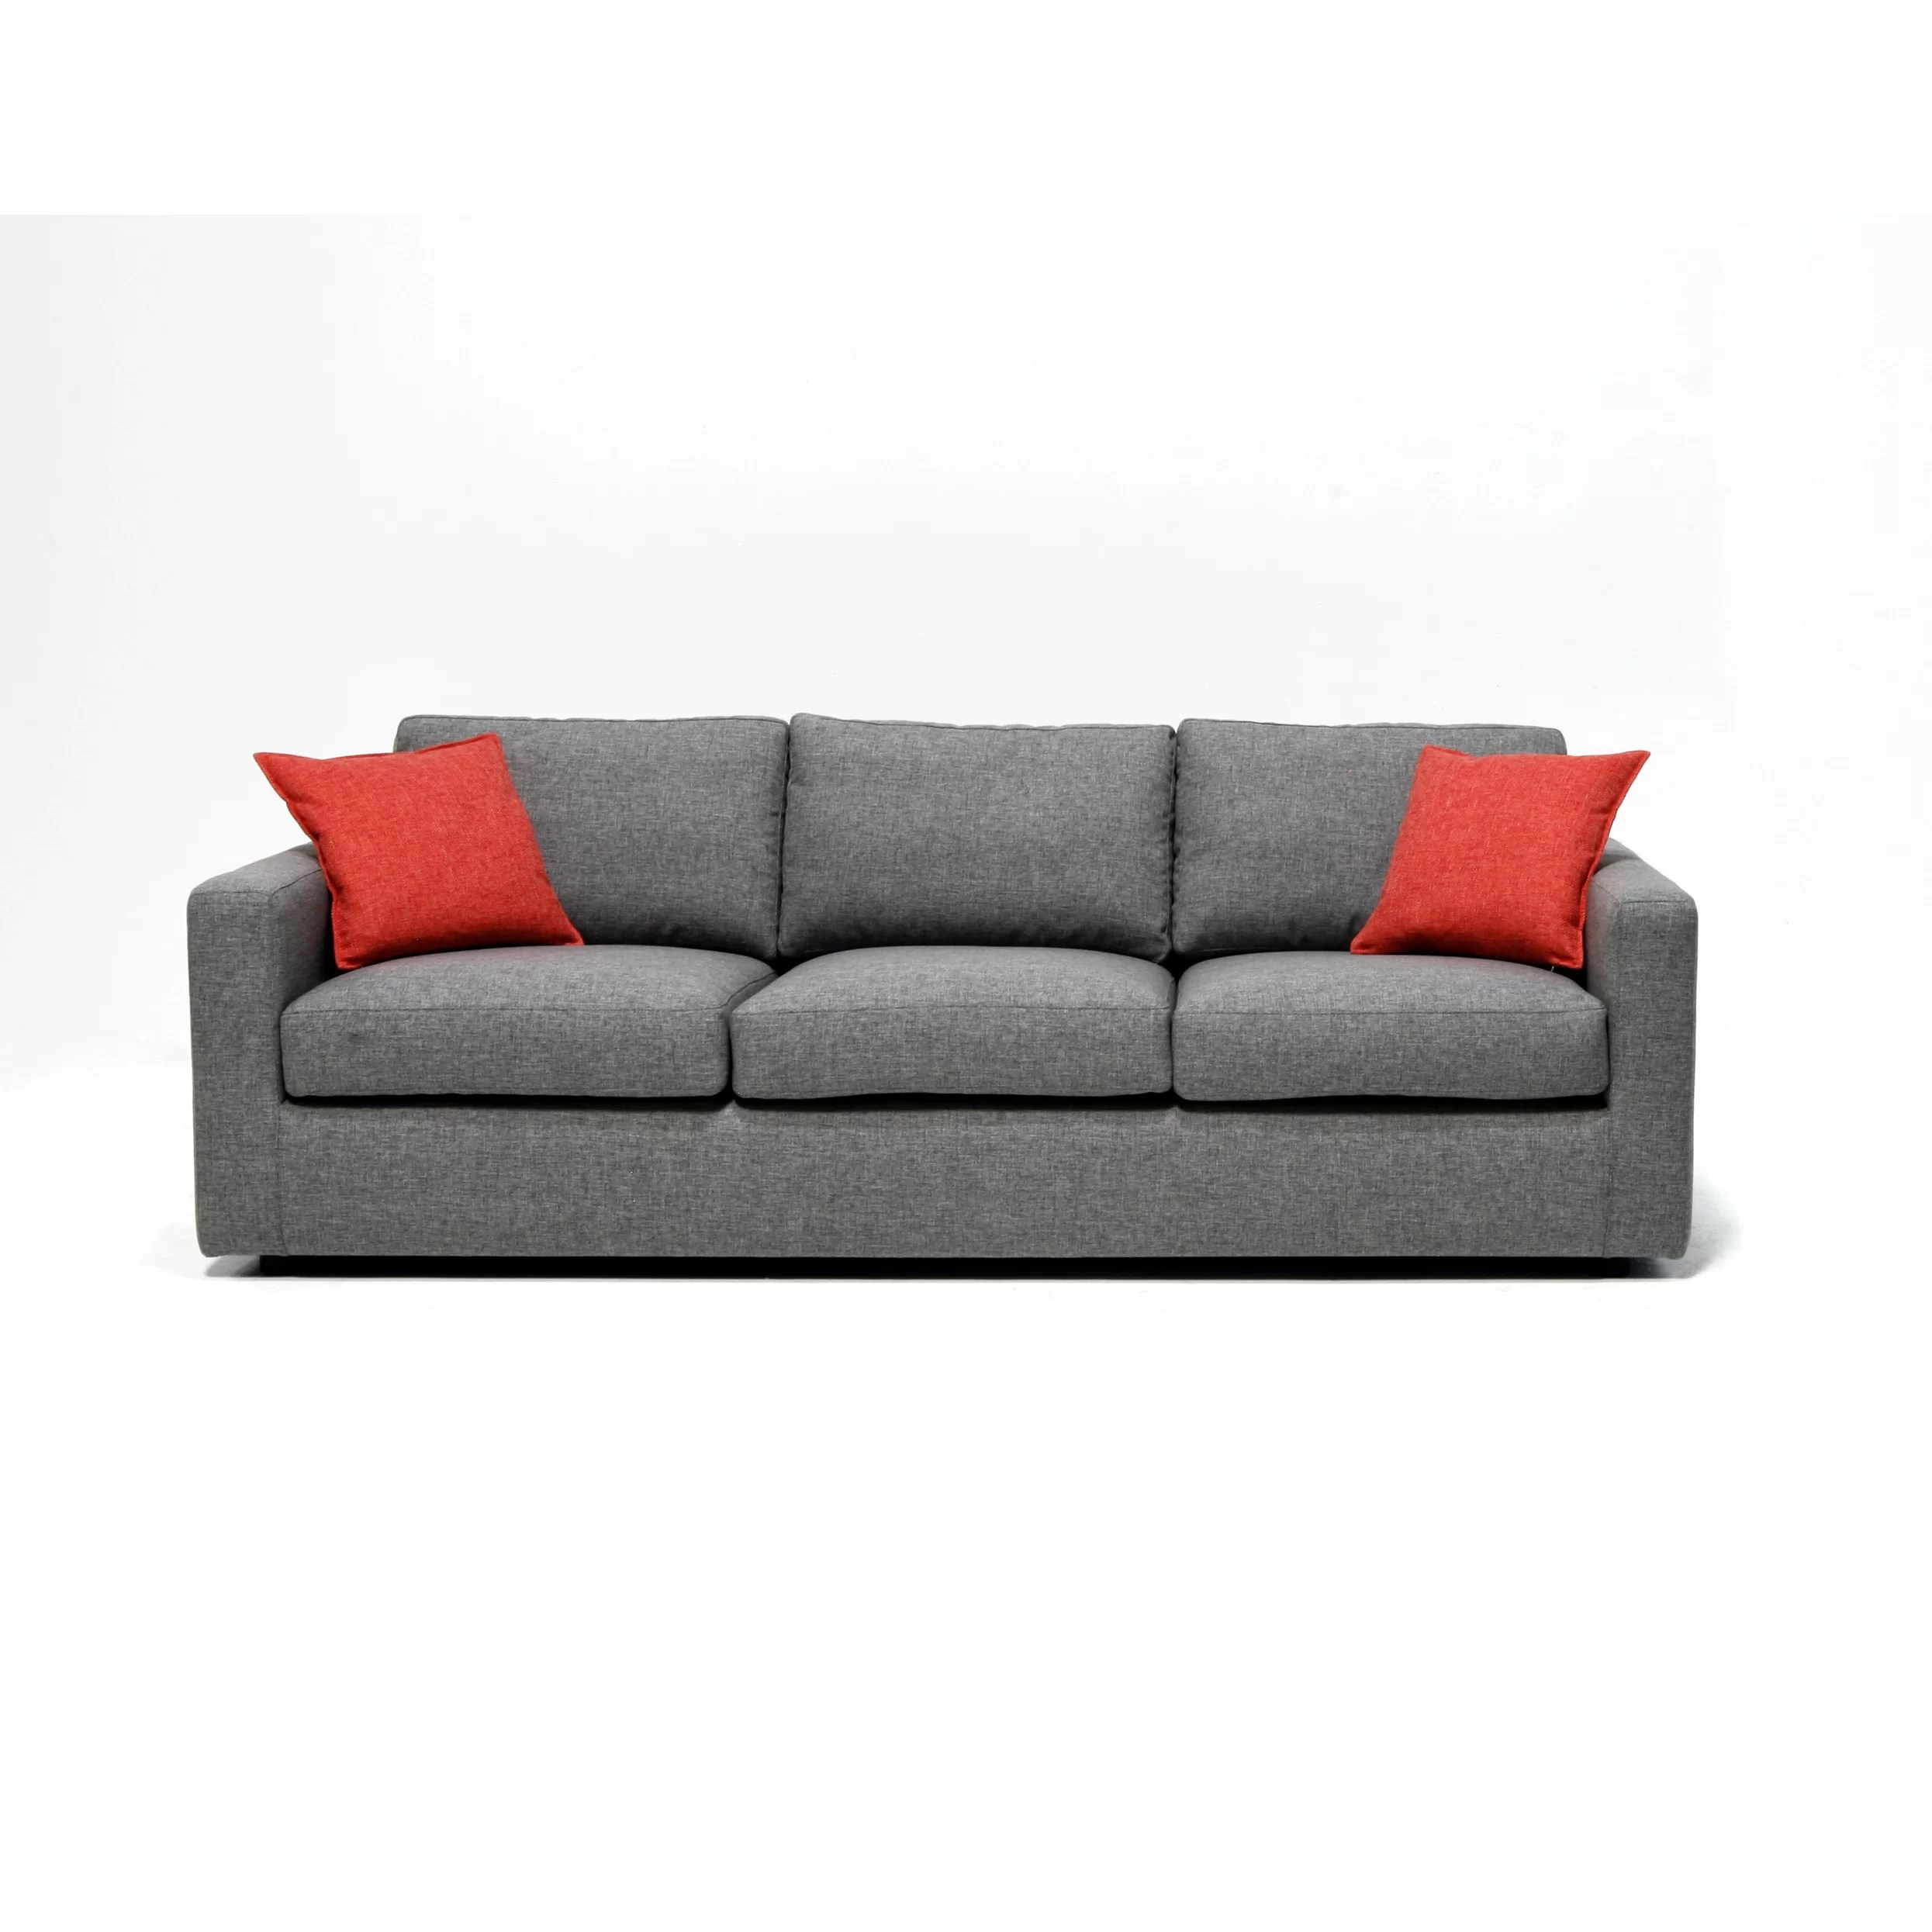 Focus On Furniture Sofa Bed Edward Sofa Wayfair